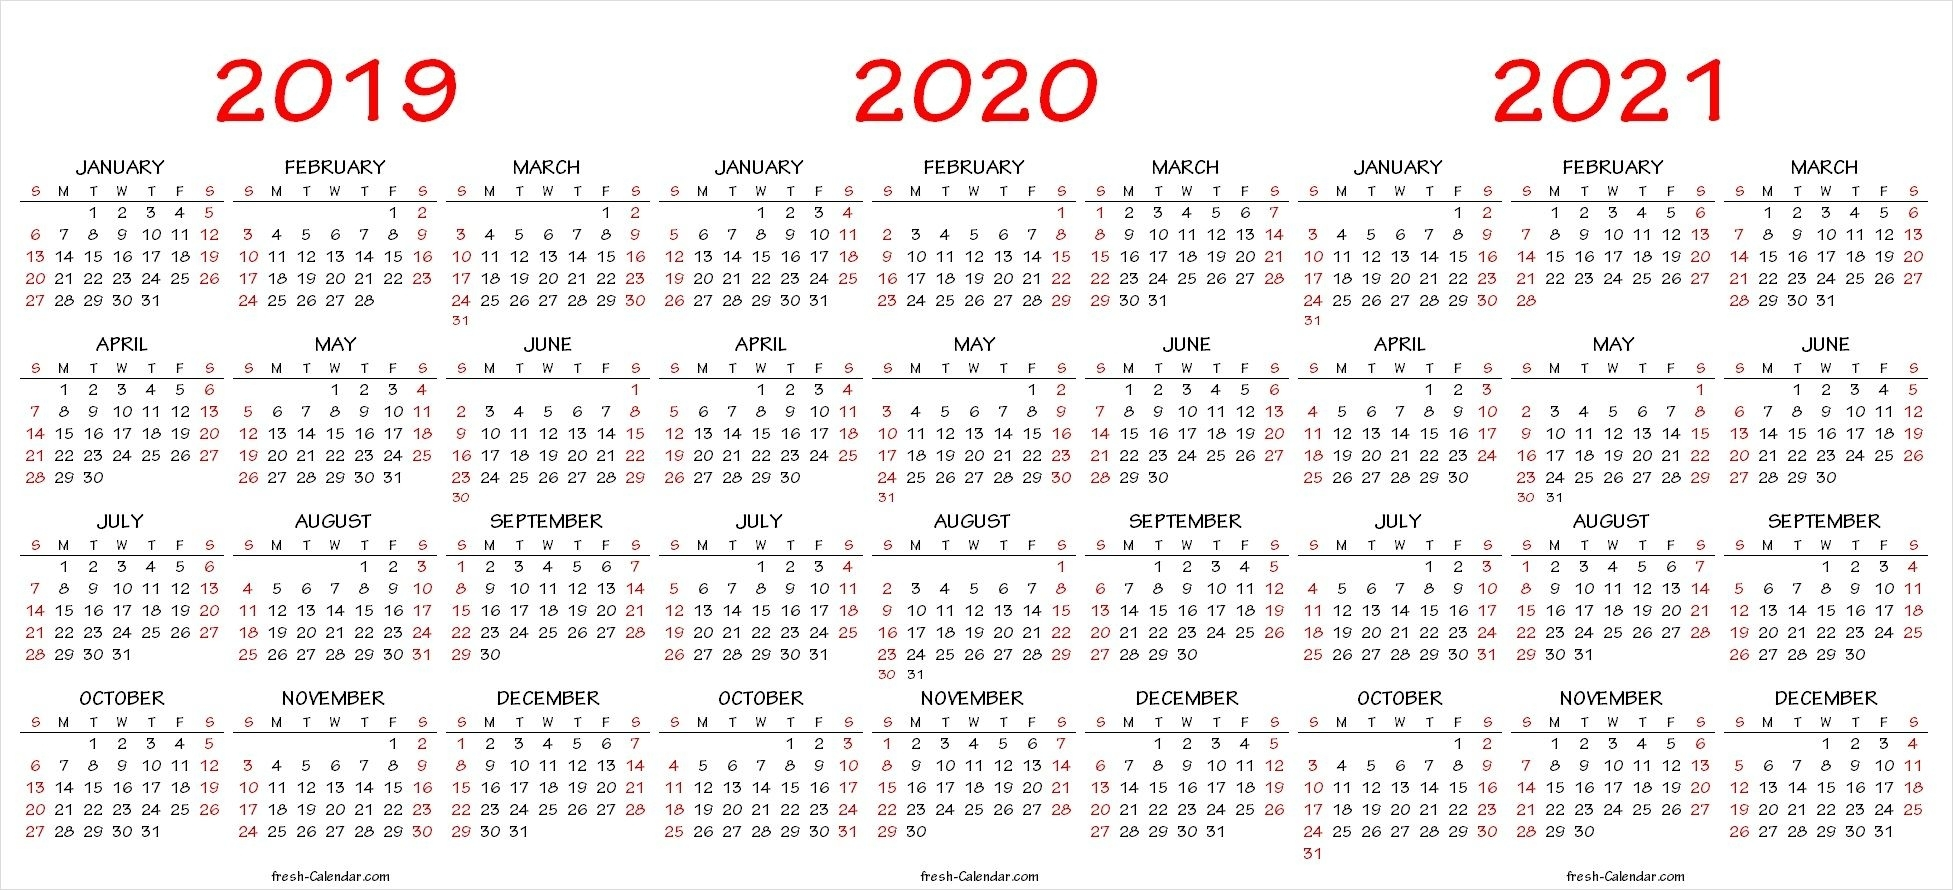 2019 2020 2021 Calendar Pdf Template | 2021 Calendar, Yearly within May Calendars For 2019 2020 2021 And 2022